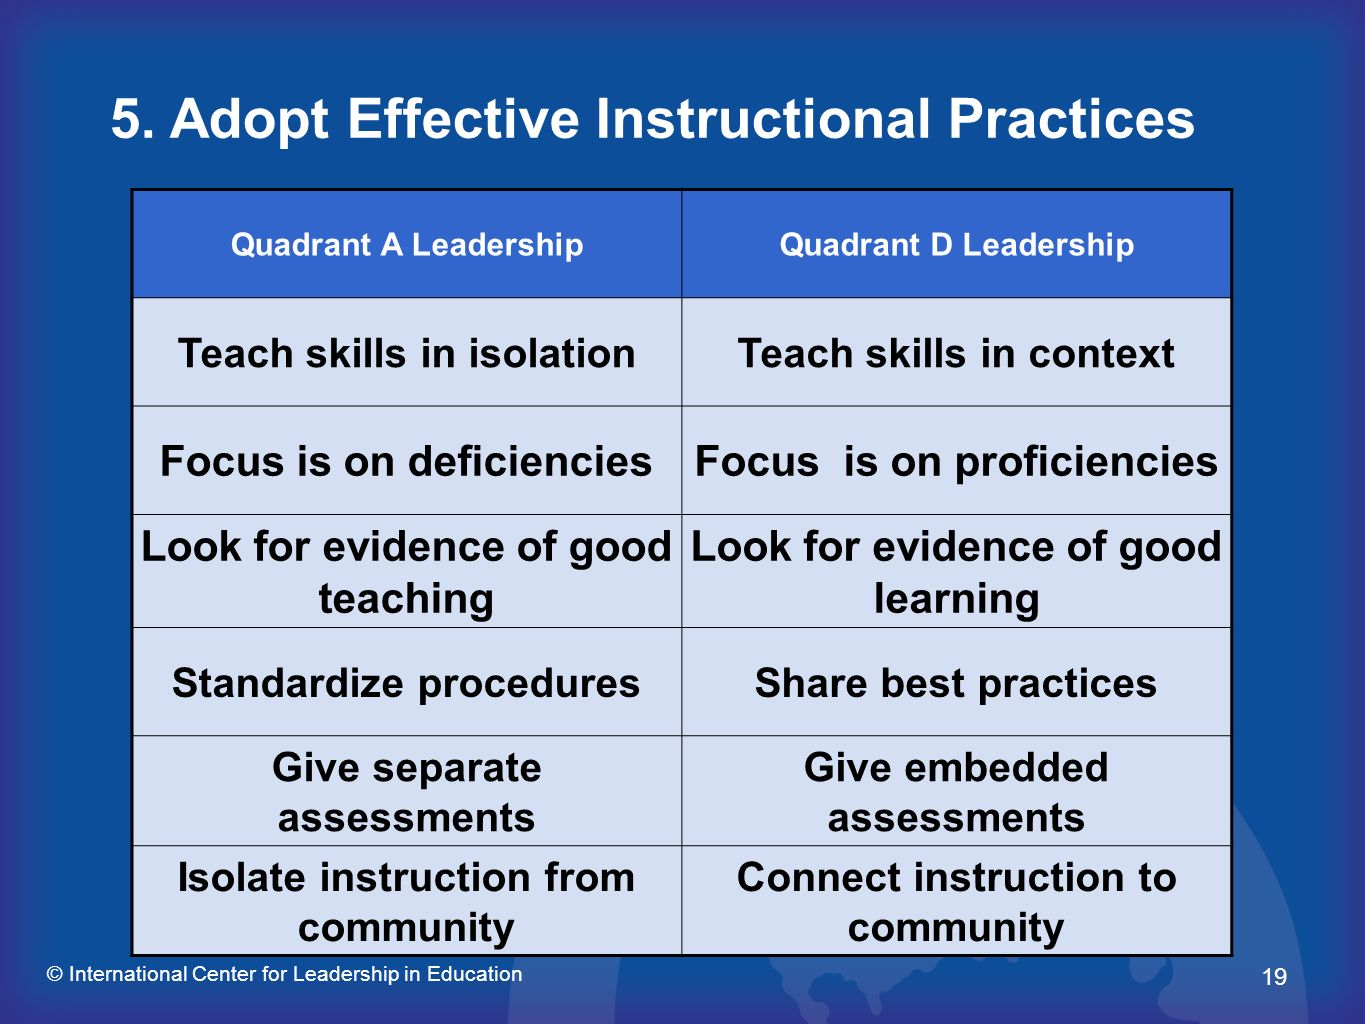 5. Adopt Effective Instructional Practices